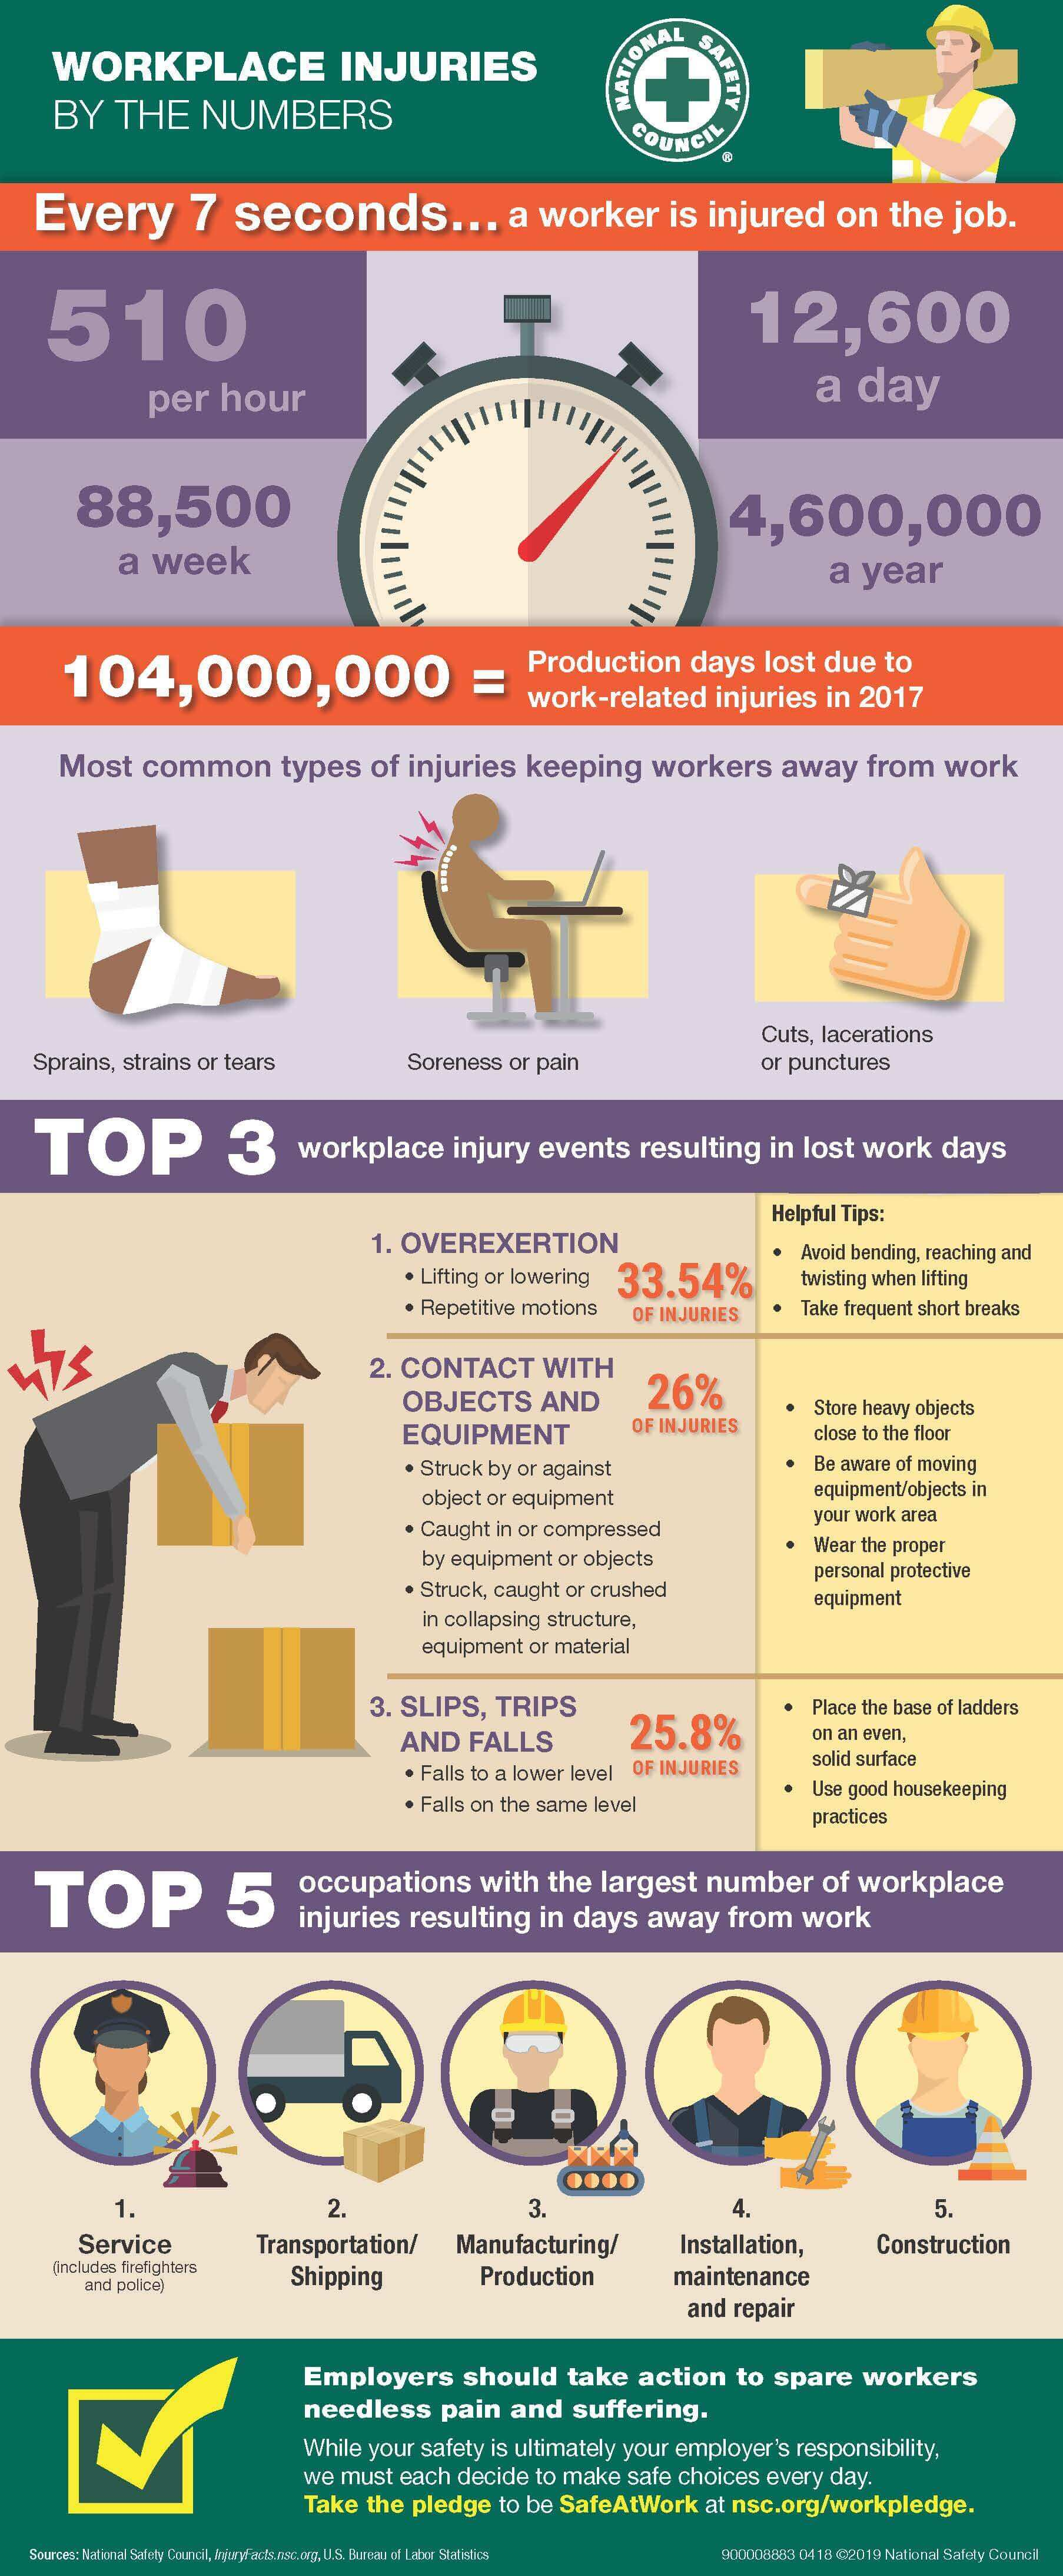 Workplace Injury Statistics Injury Rates And Most Common